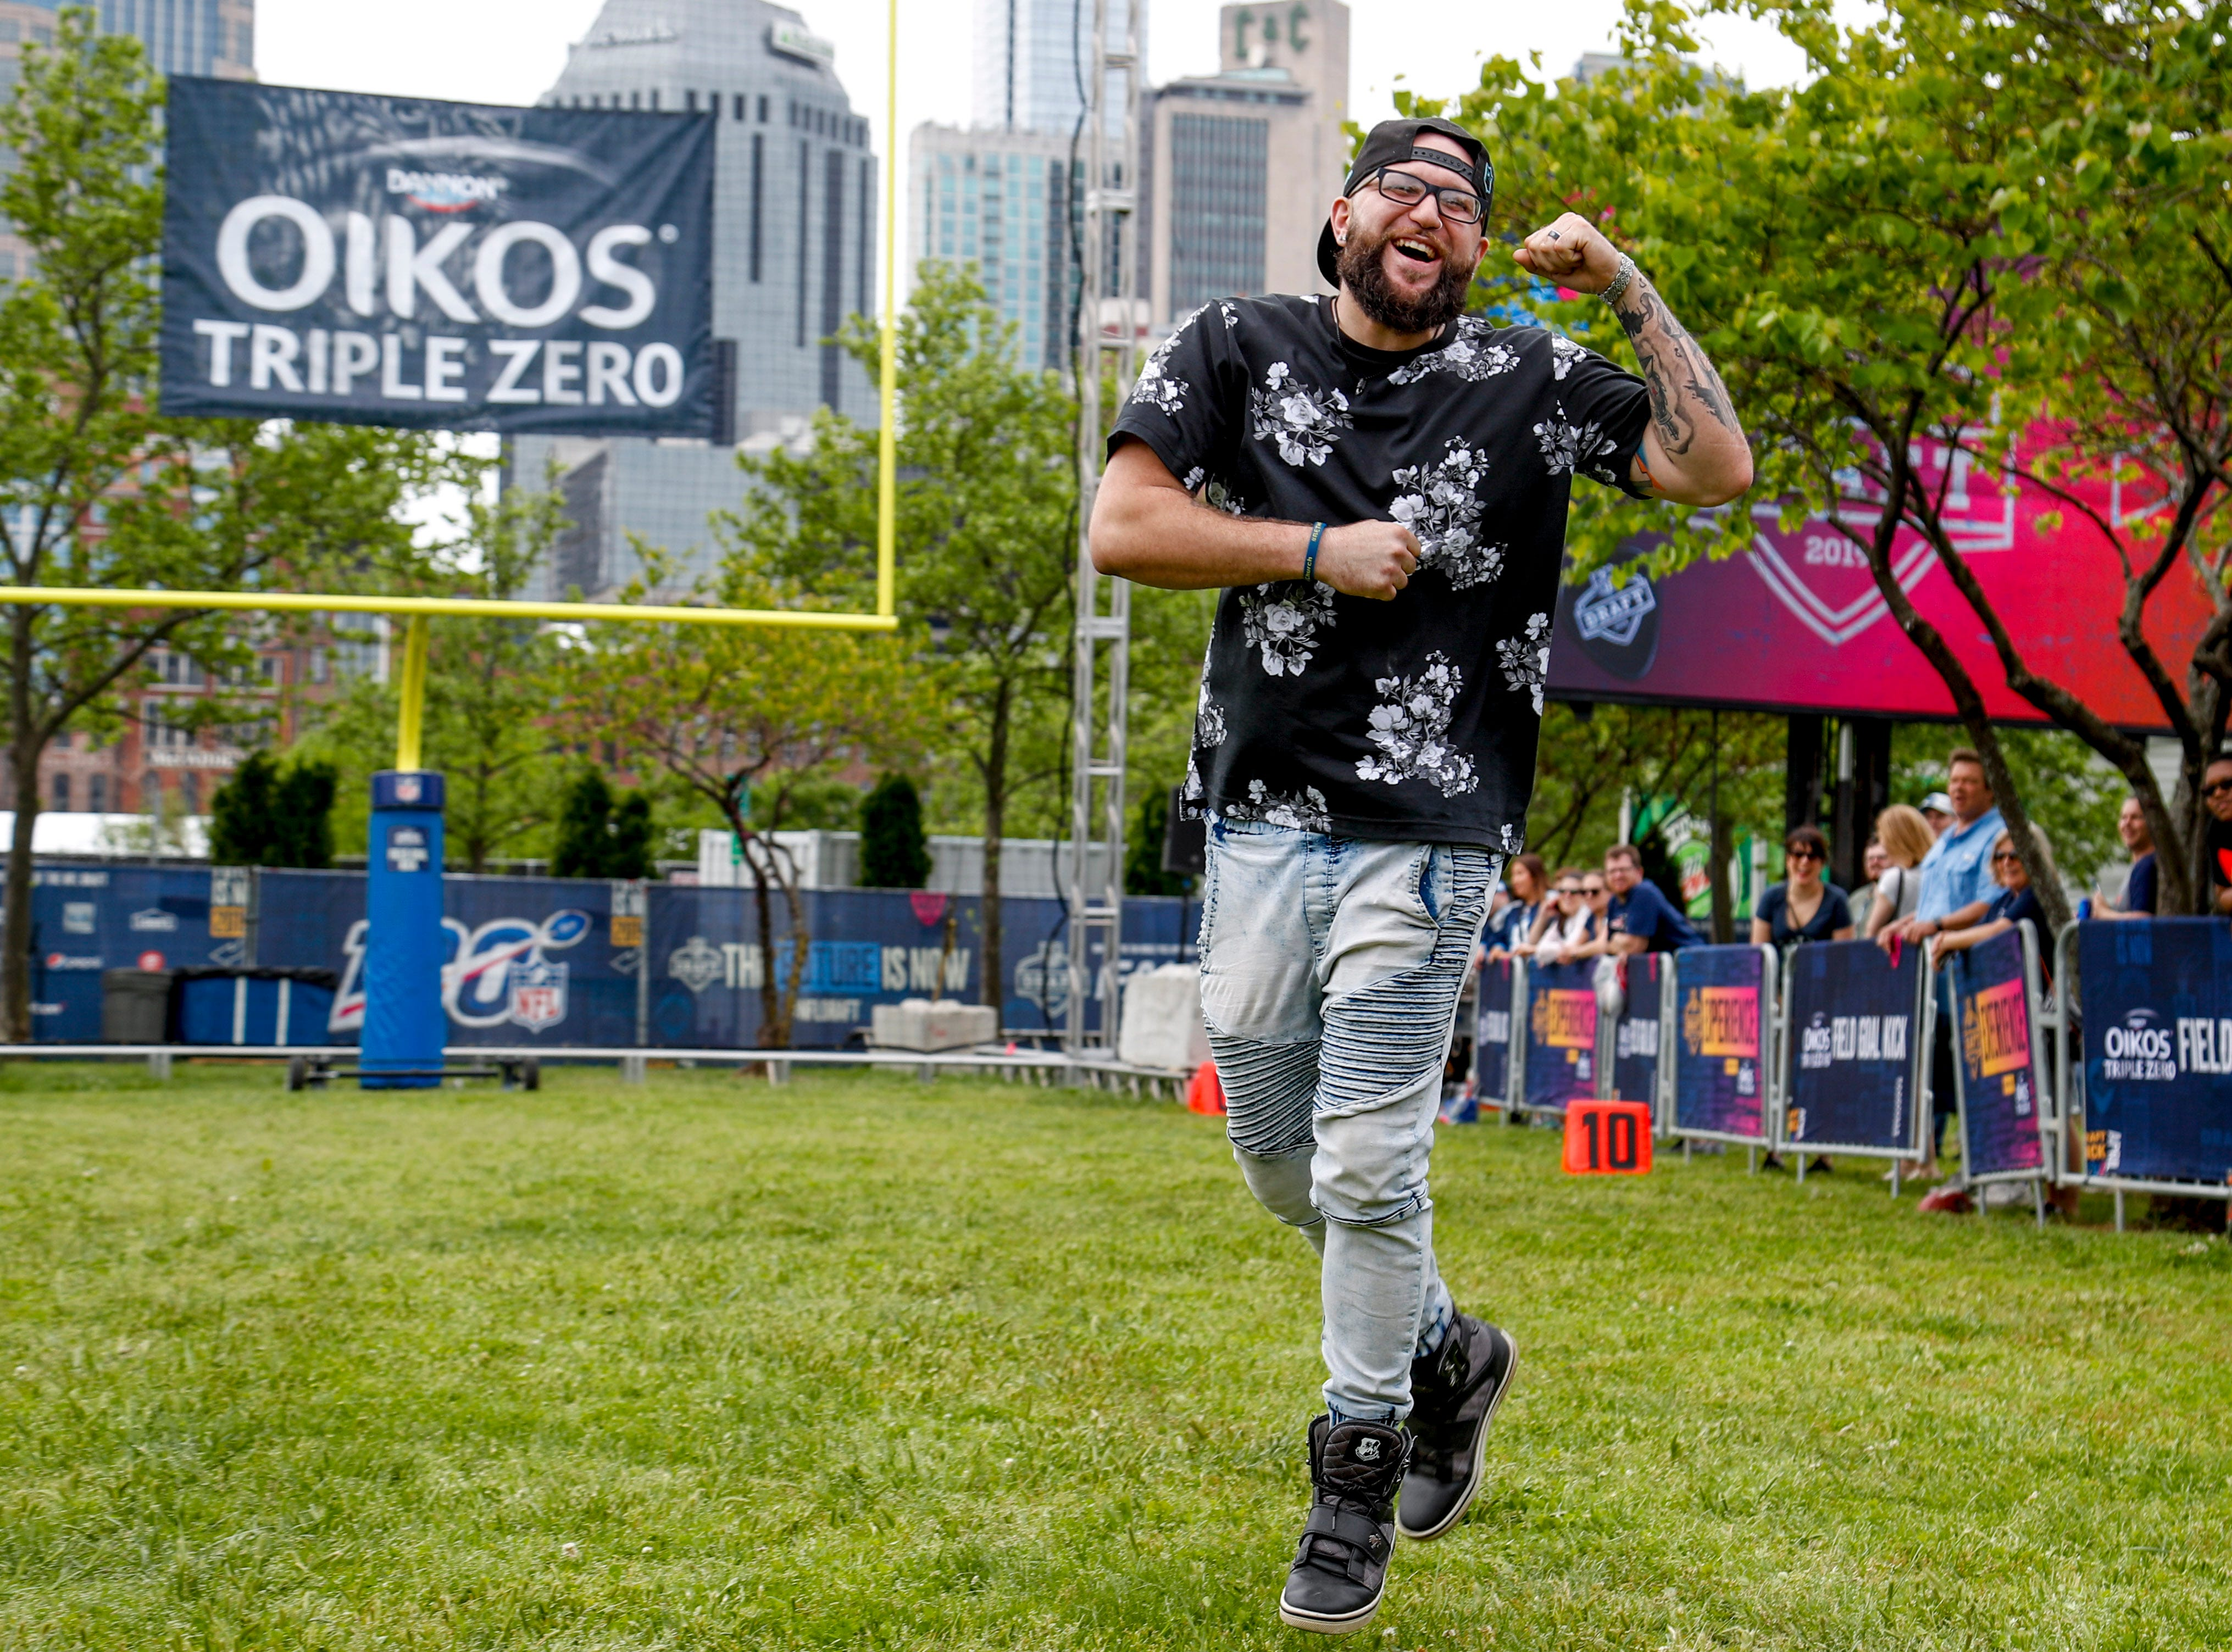 A fan jumps around in joyful disappointment after kicking a ball that rolled on the ground during the NFL Draft Experience at Nissan Stadium in Nashville, Tenn., on Thursday, April 25, 2019.